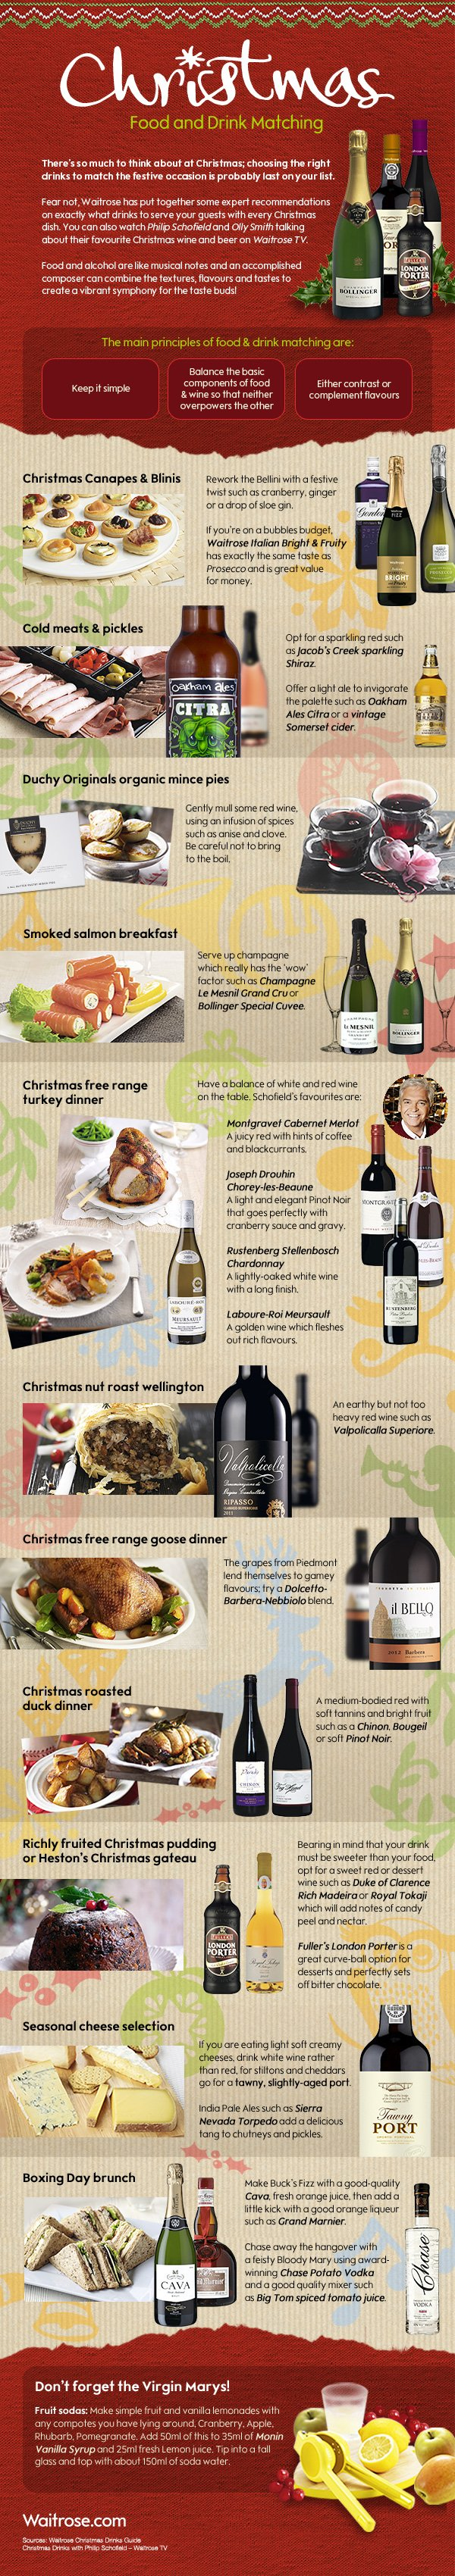 Festive Food and Wine Matching Guide